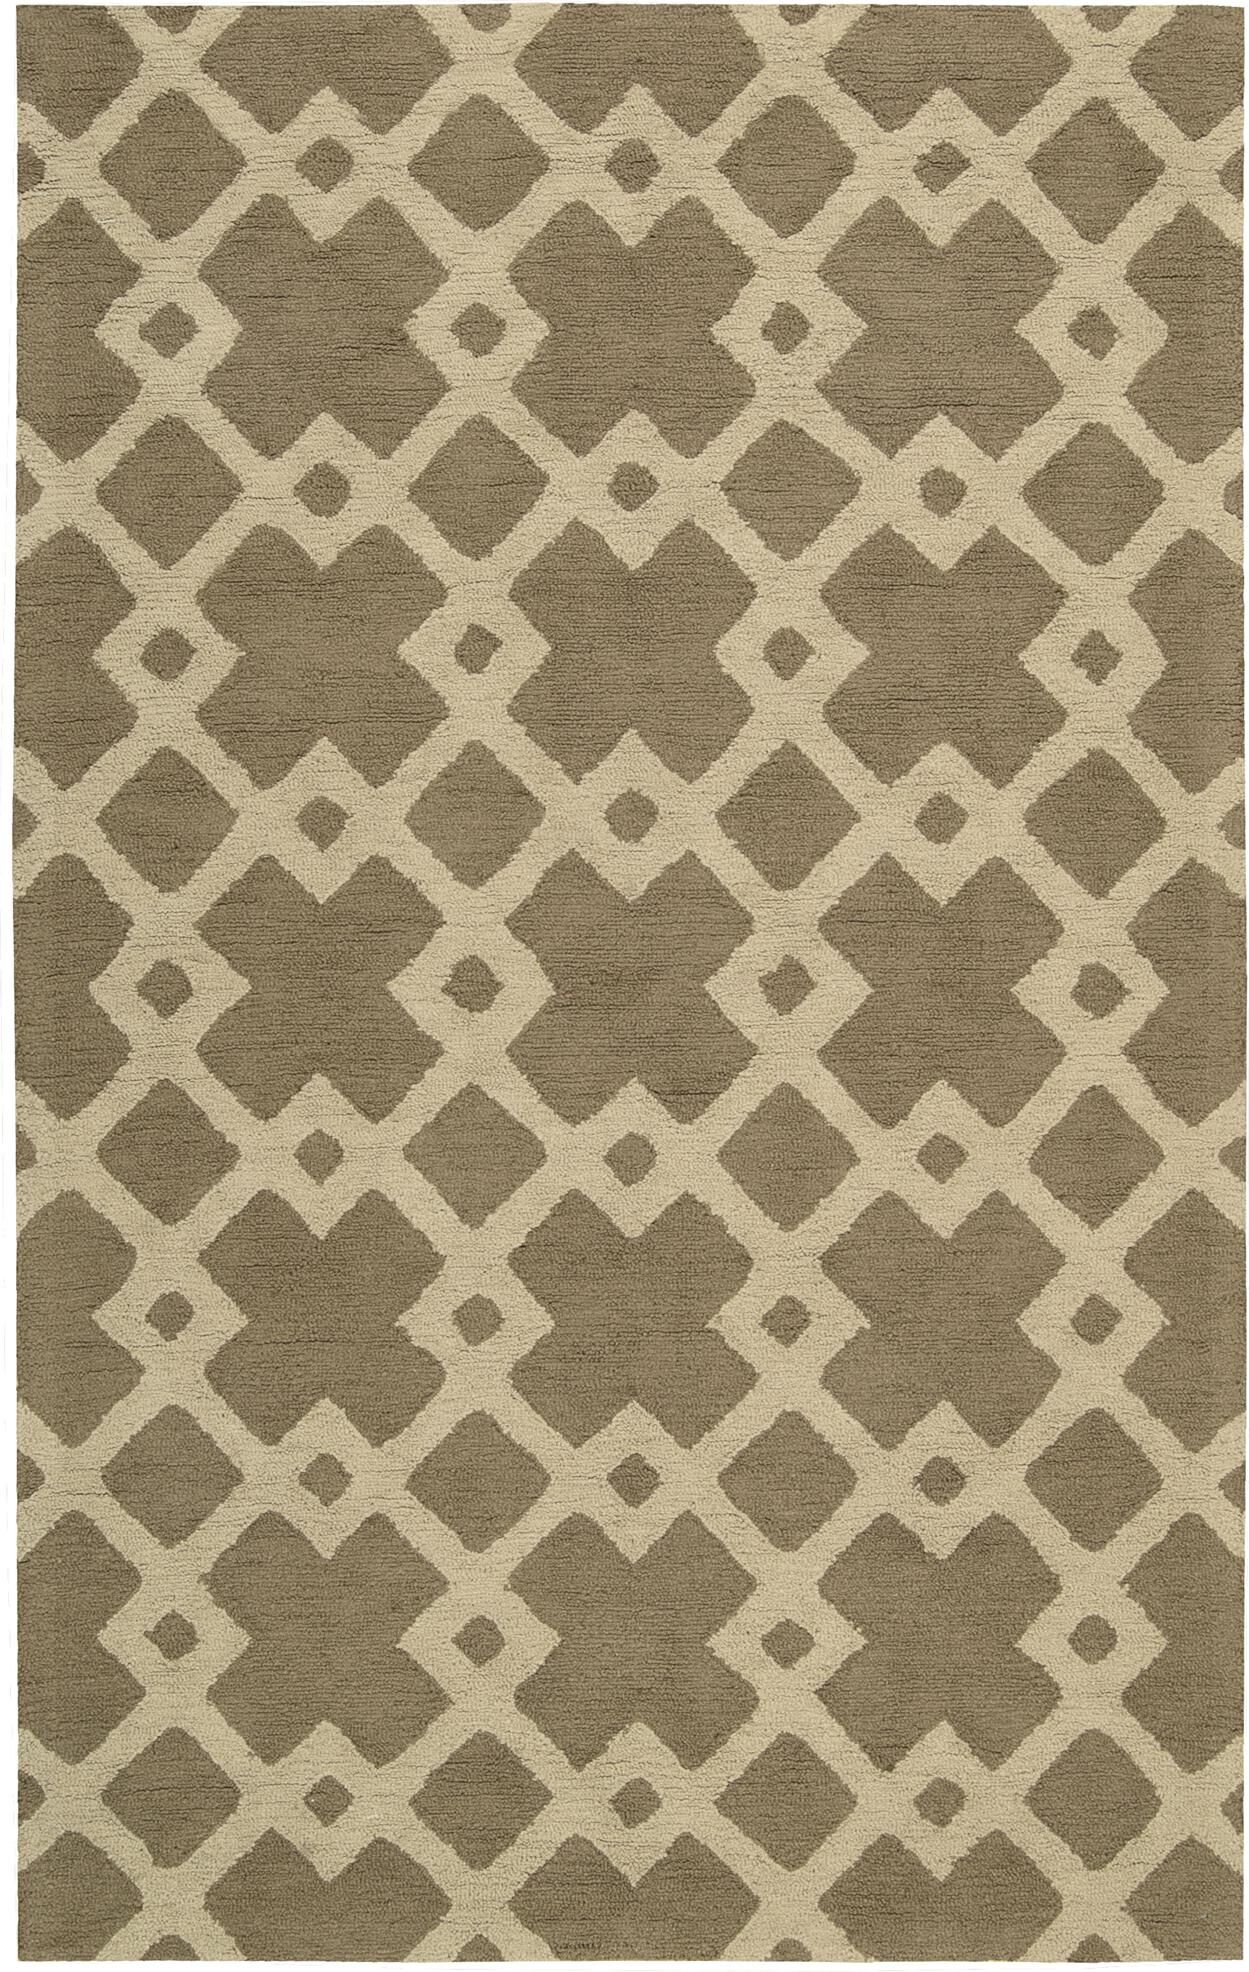 Hateya Hand-Woven Taupe Area Rug Rug Size: Rectangle 5' x 8'